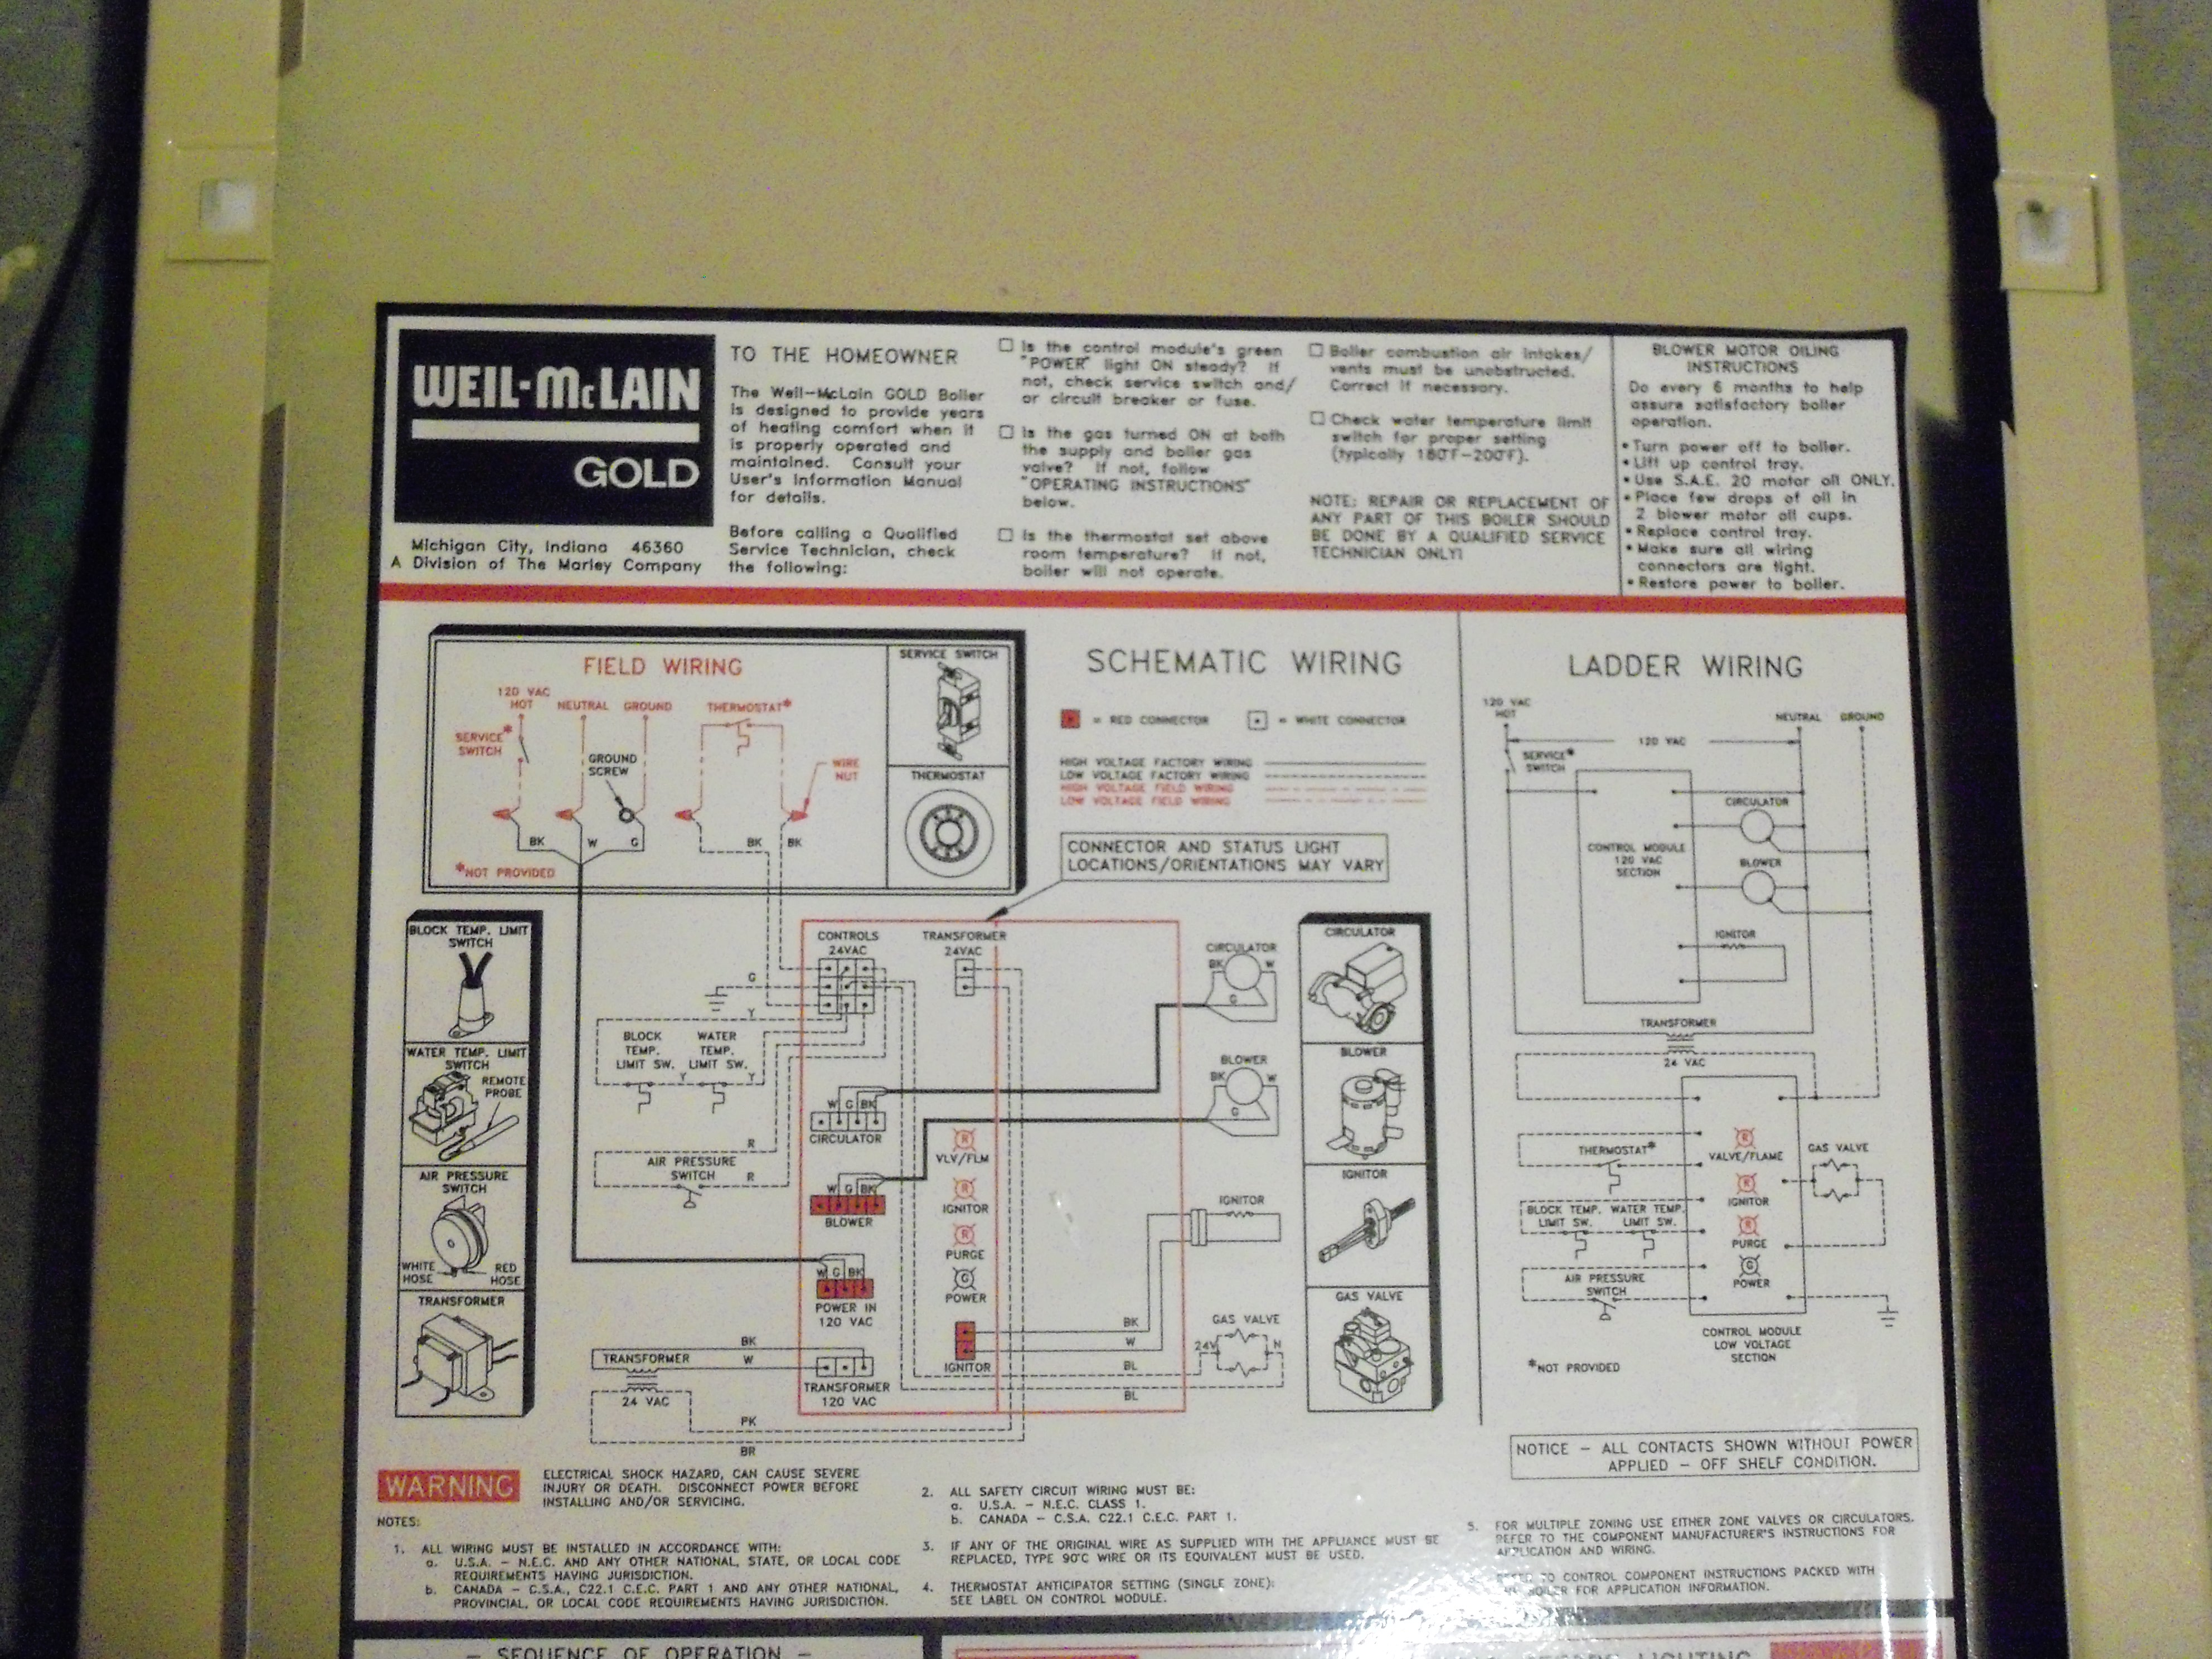 Attractive Weil Mclain Tech Support Pattern - Electrical System ...